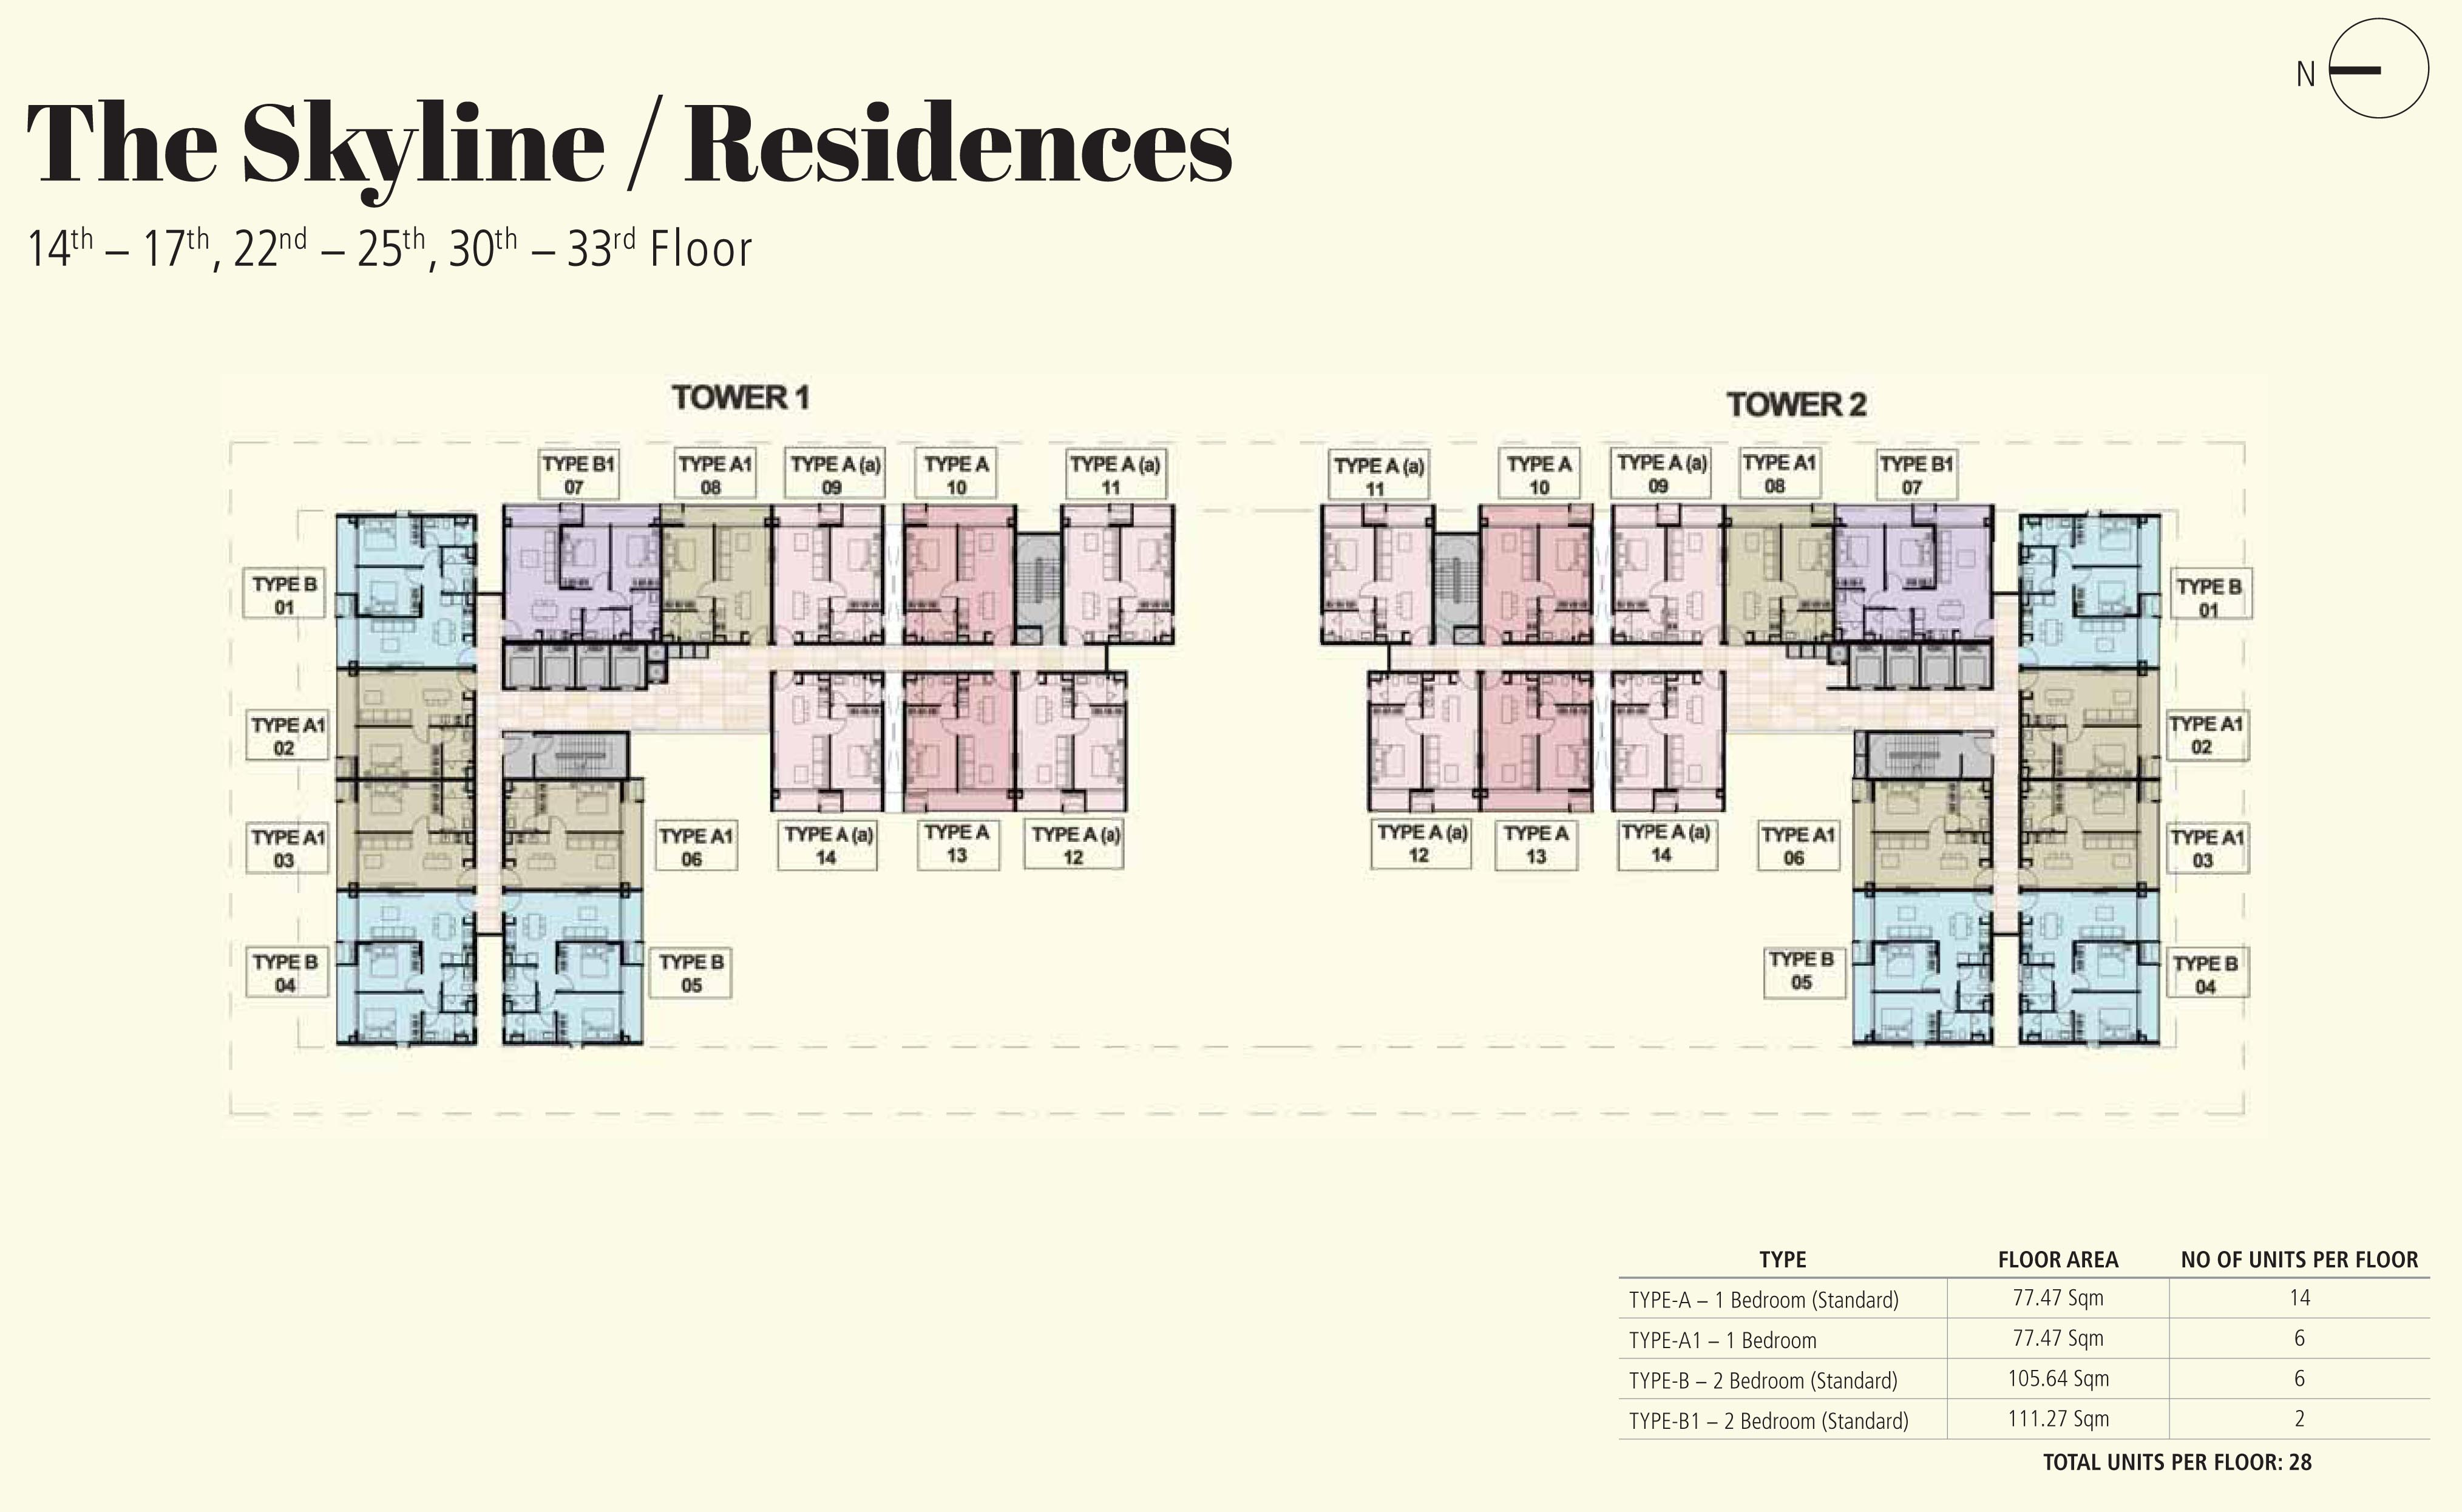 14th-17th, 22nd-25th, 30th-33rd Floor Plans